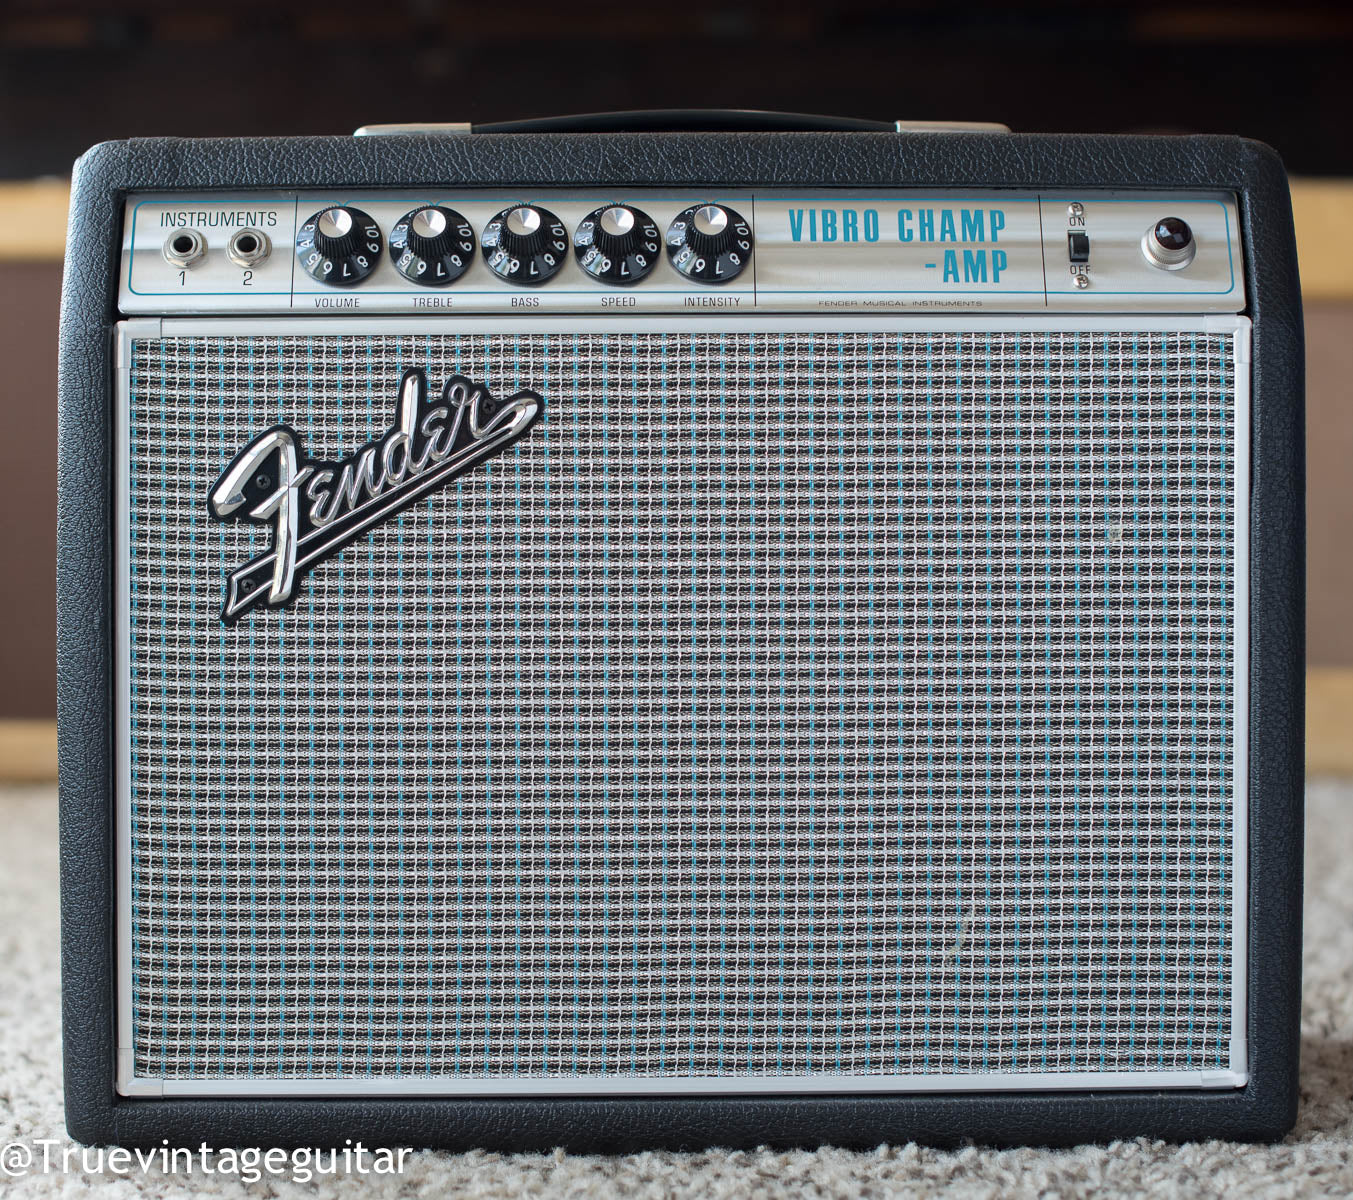 1968 Fender Vibro Champ guitar amplifier drip edge